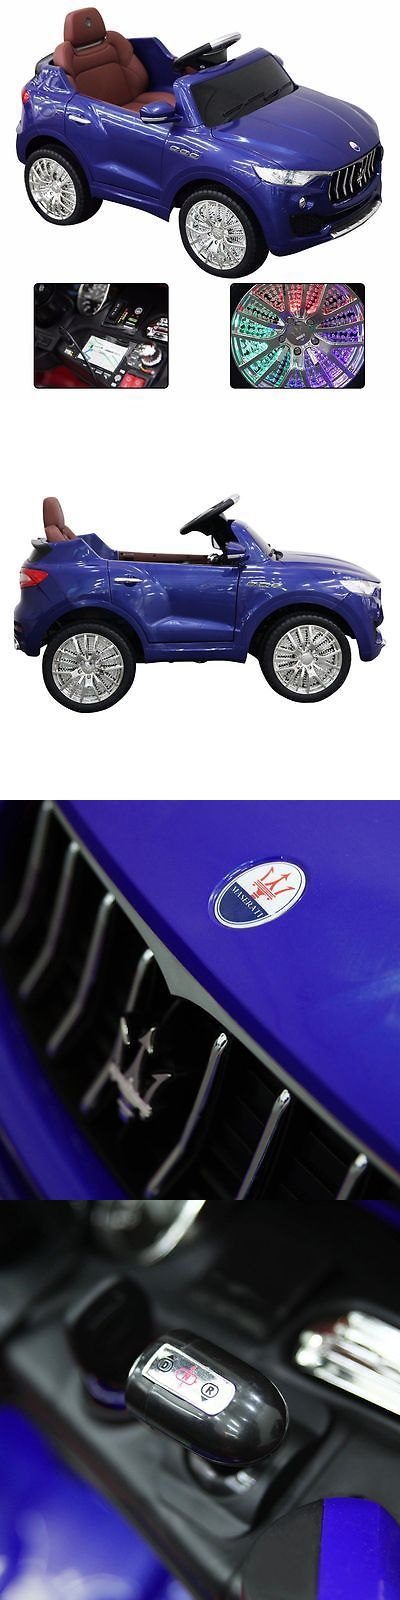 Ride On Toys and Accessories 145944: Maserati Style 6V Kids Ride On Car Electric Power Wheels Remote Control Blue -> BUY IT NOW ONLY: $168.45 on eBay!